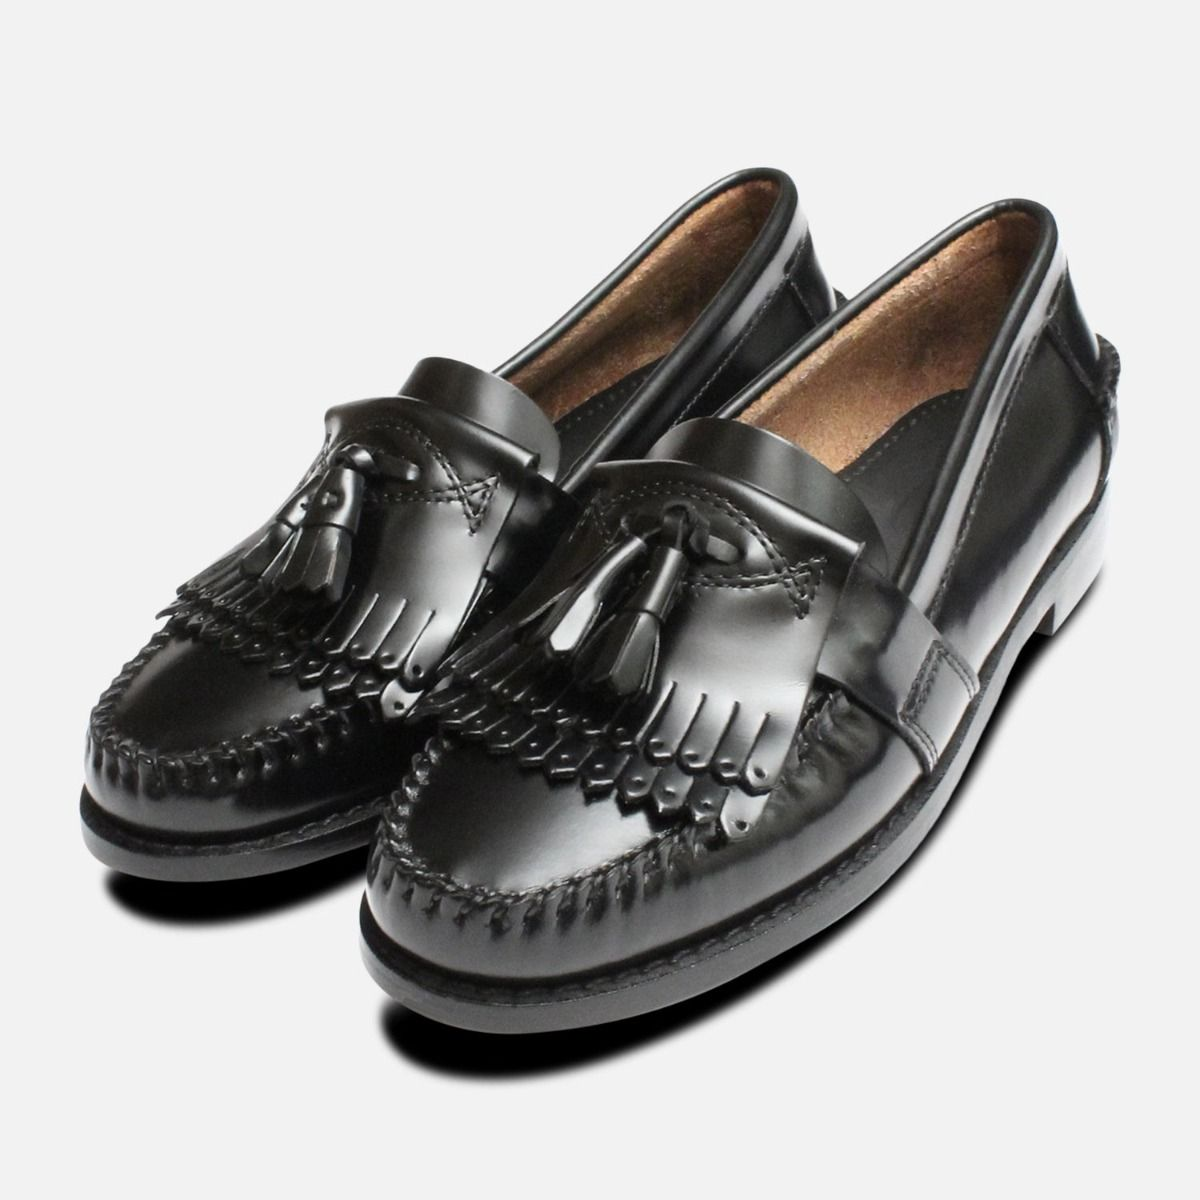 f43c9fb3650 Ladies Black Double Fringe Tassel Elspeth Loafers